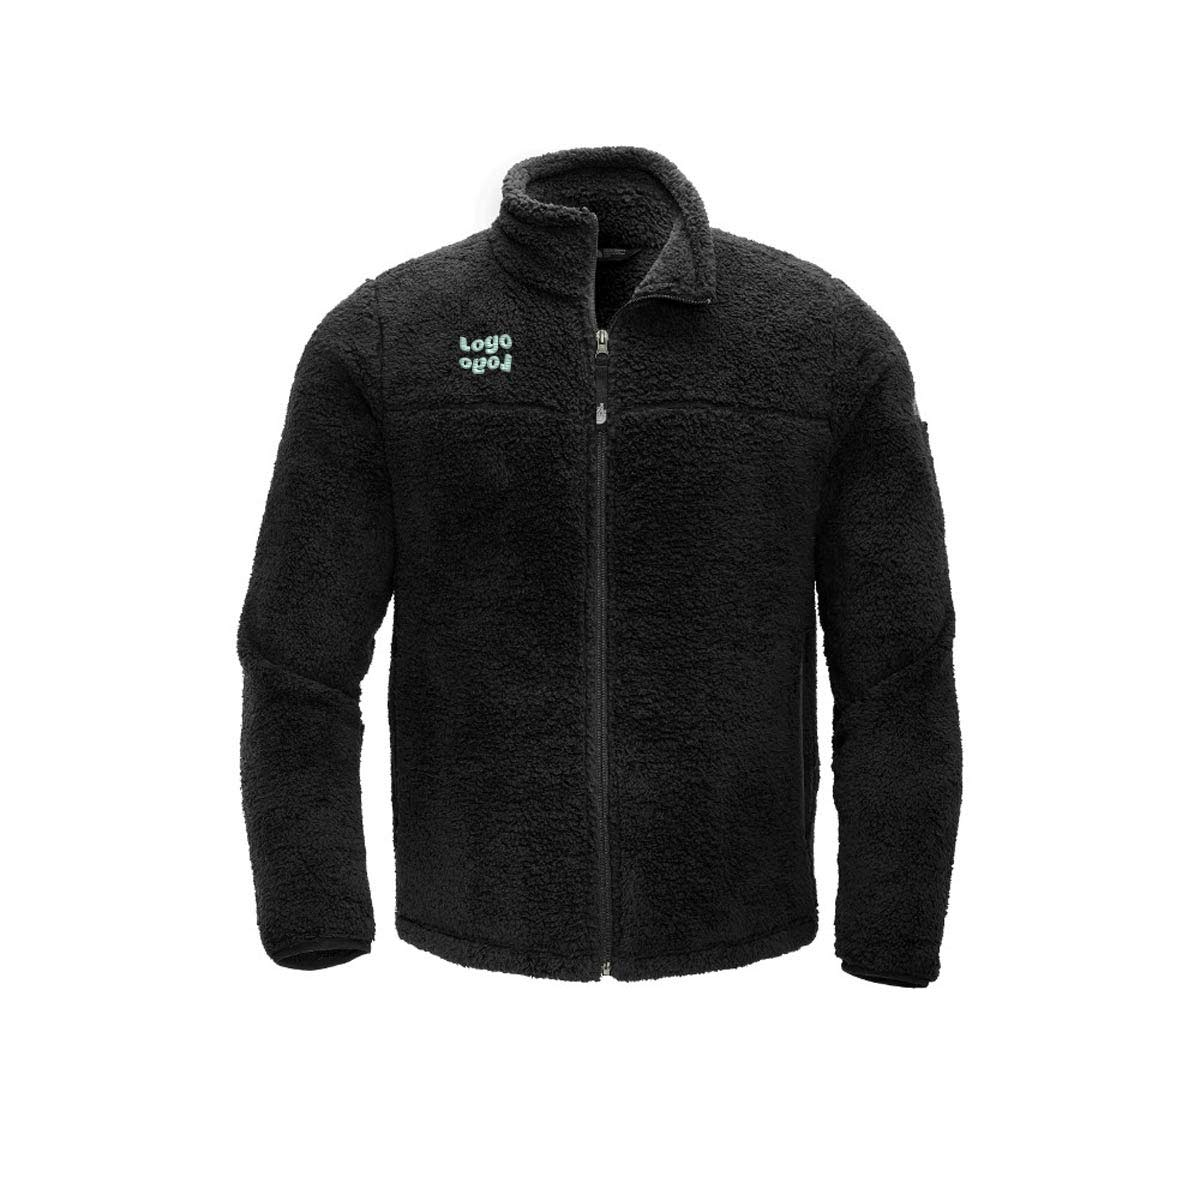 269634 high loft full zip fleece one location embroidery up to 4k stitches